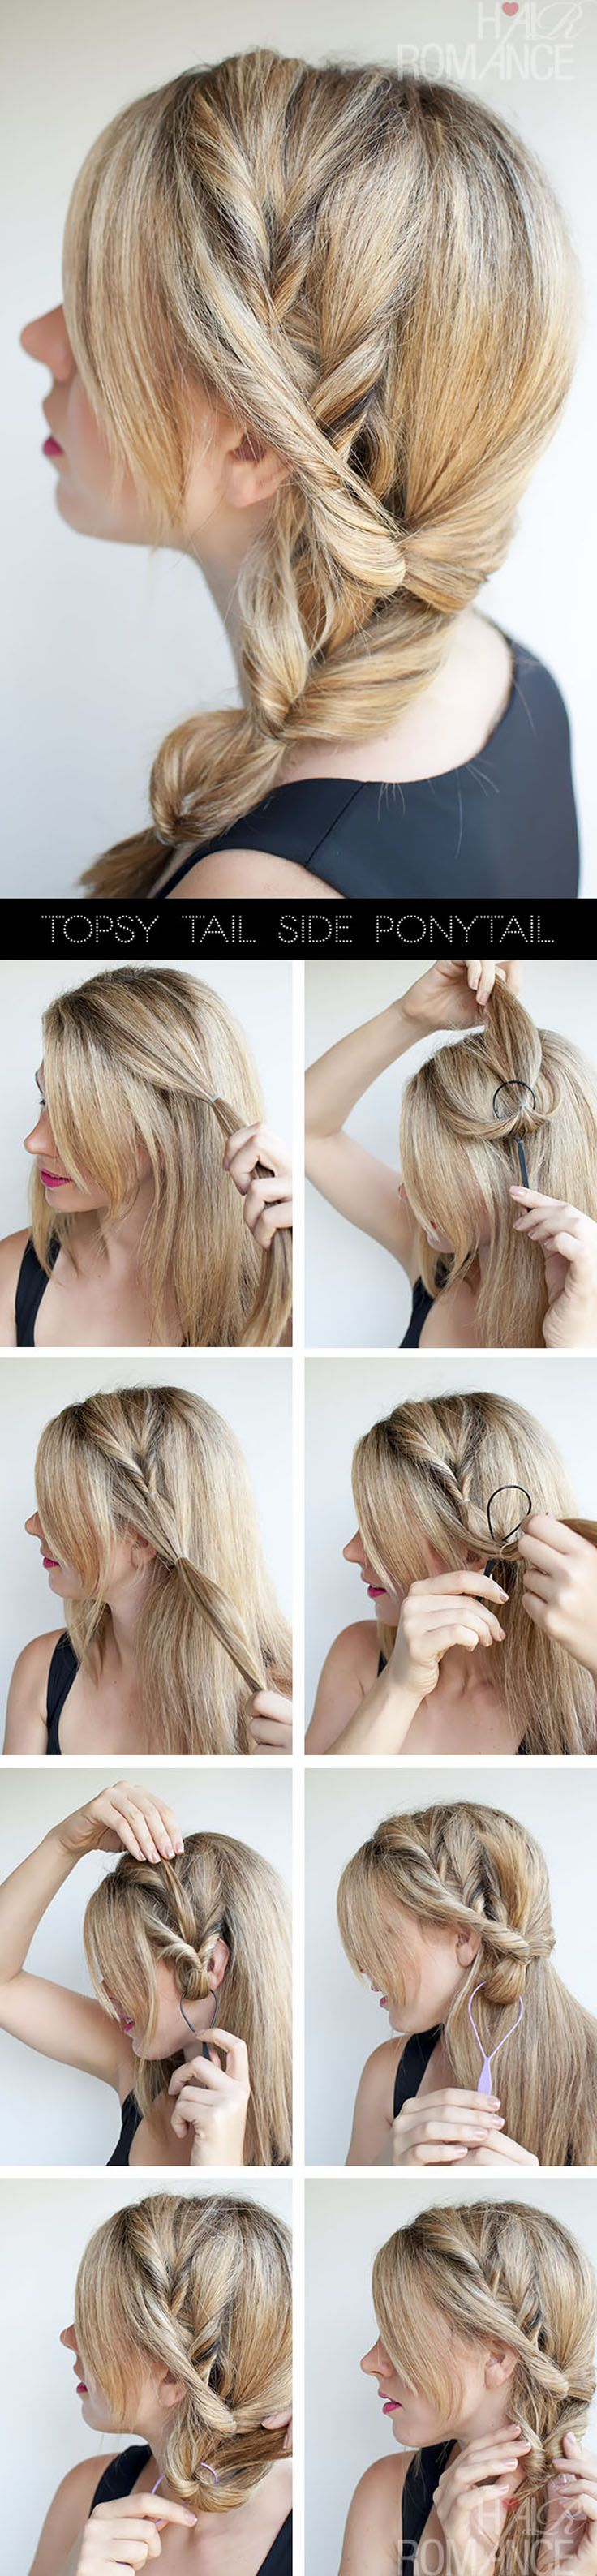 Side braid ponytail tutorial